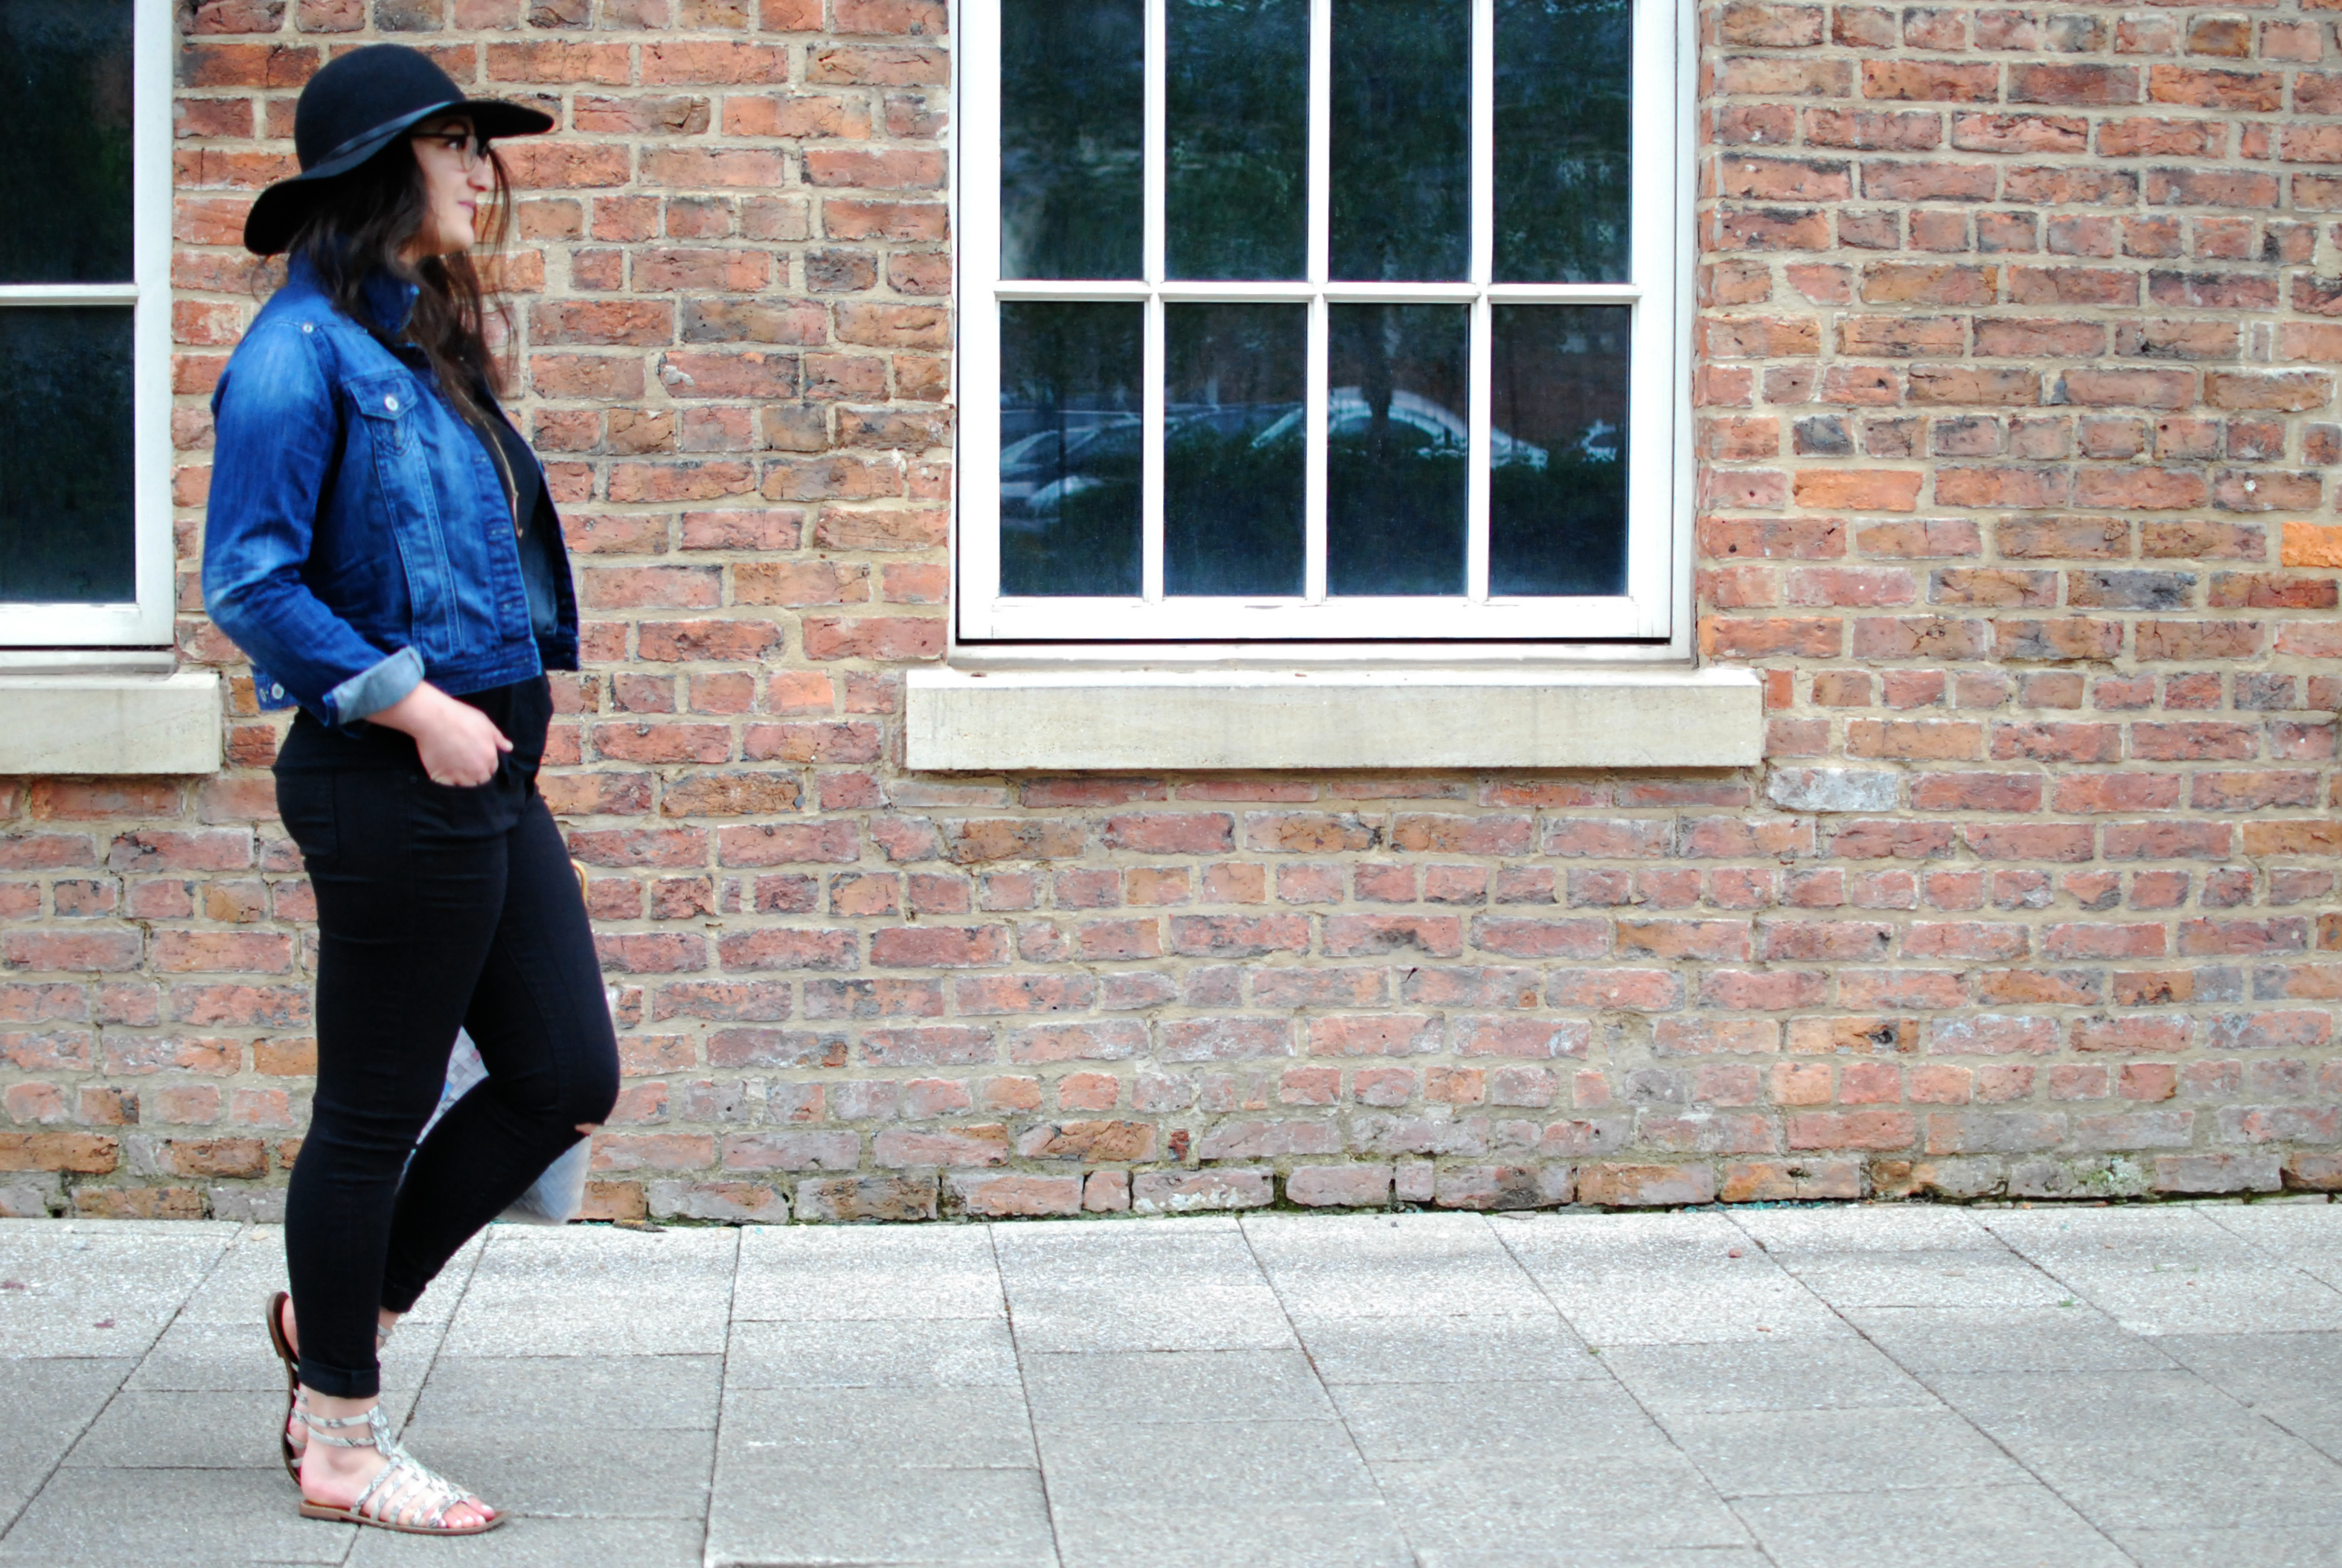 Summer uniform denim and hats